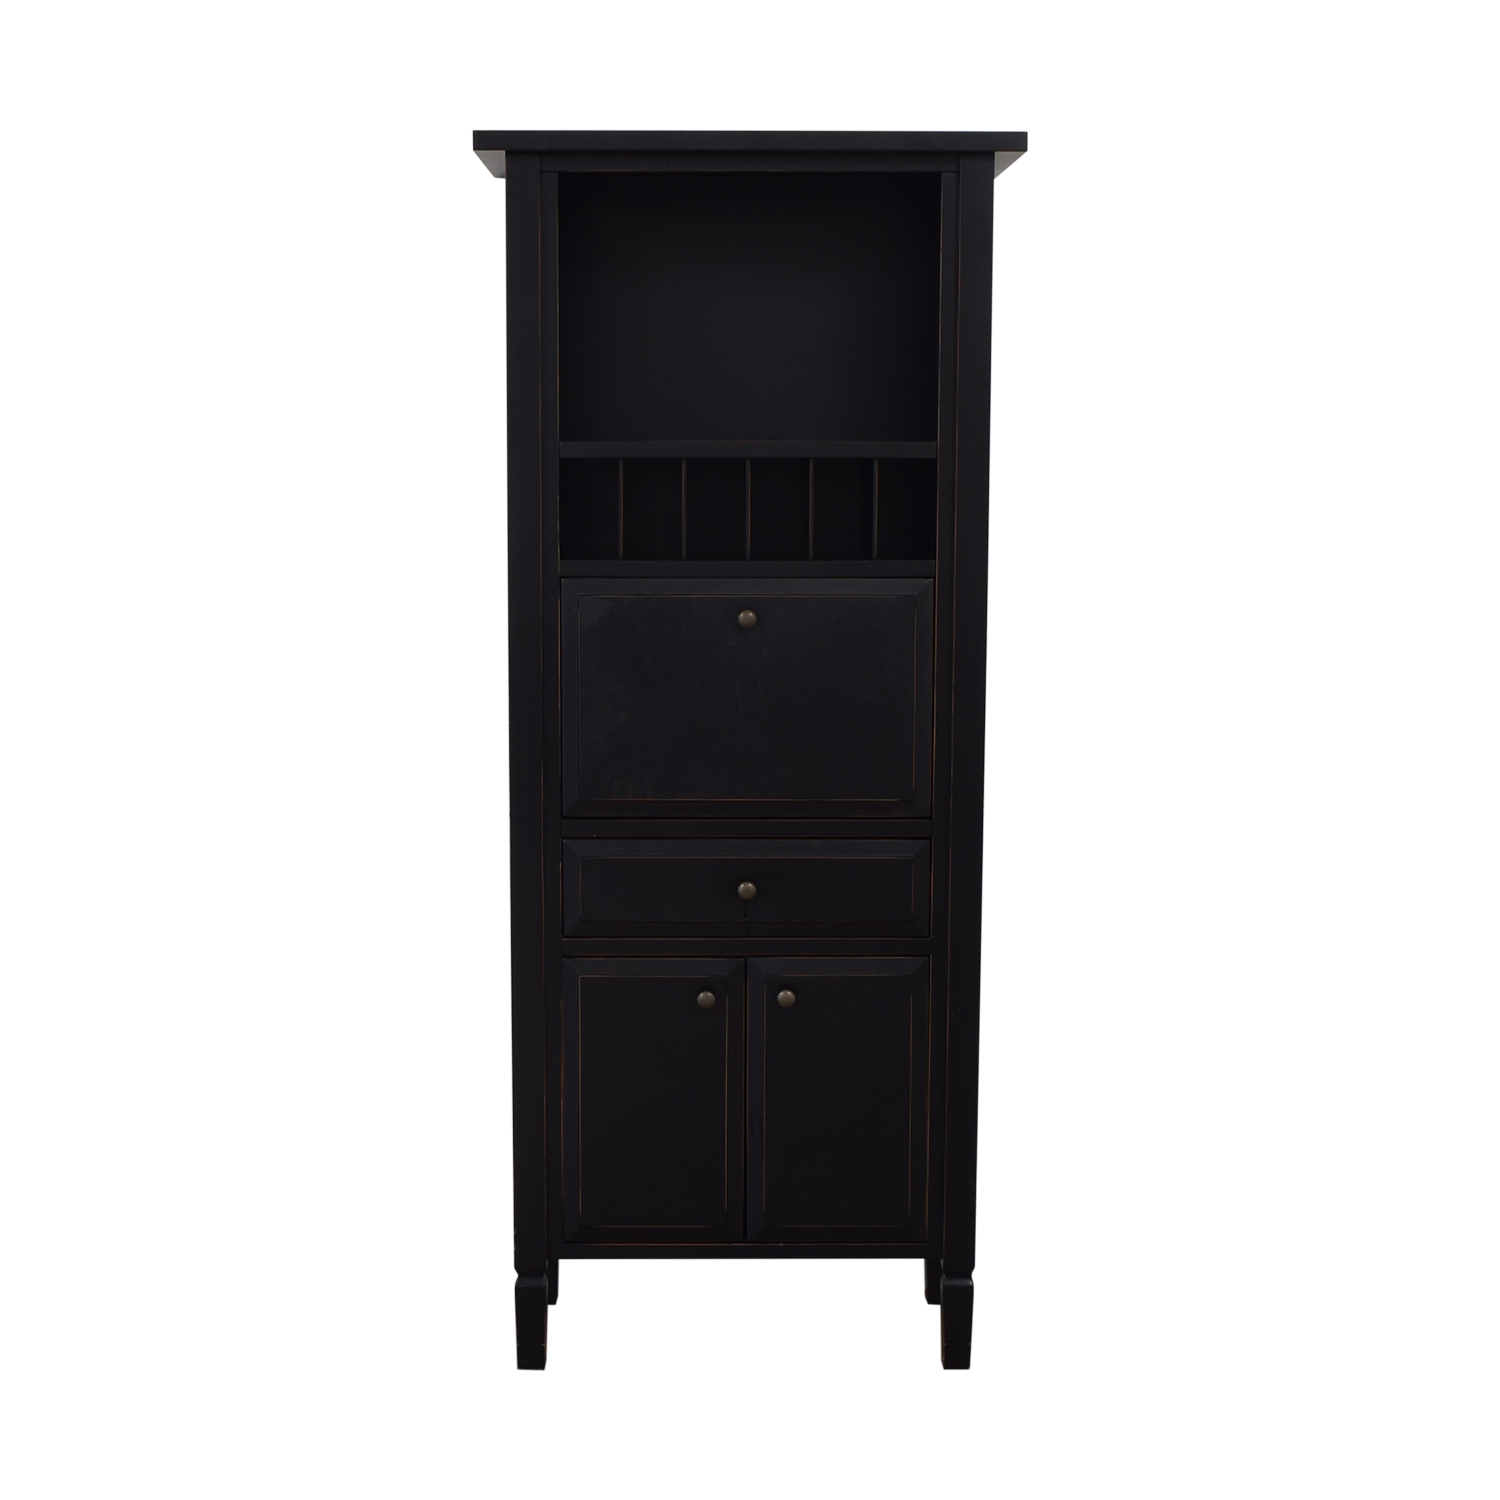 buy Crate & Barrel Storage Tall Cabinet Crate & Barrel Cabinets & Sideboards